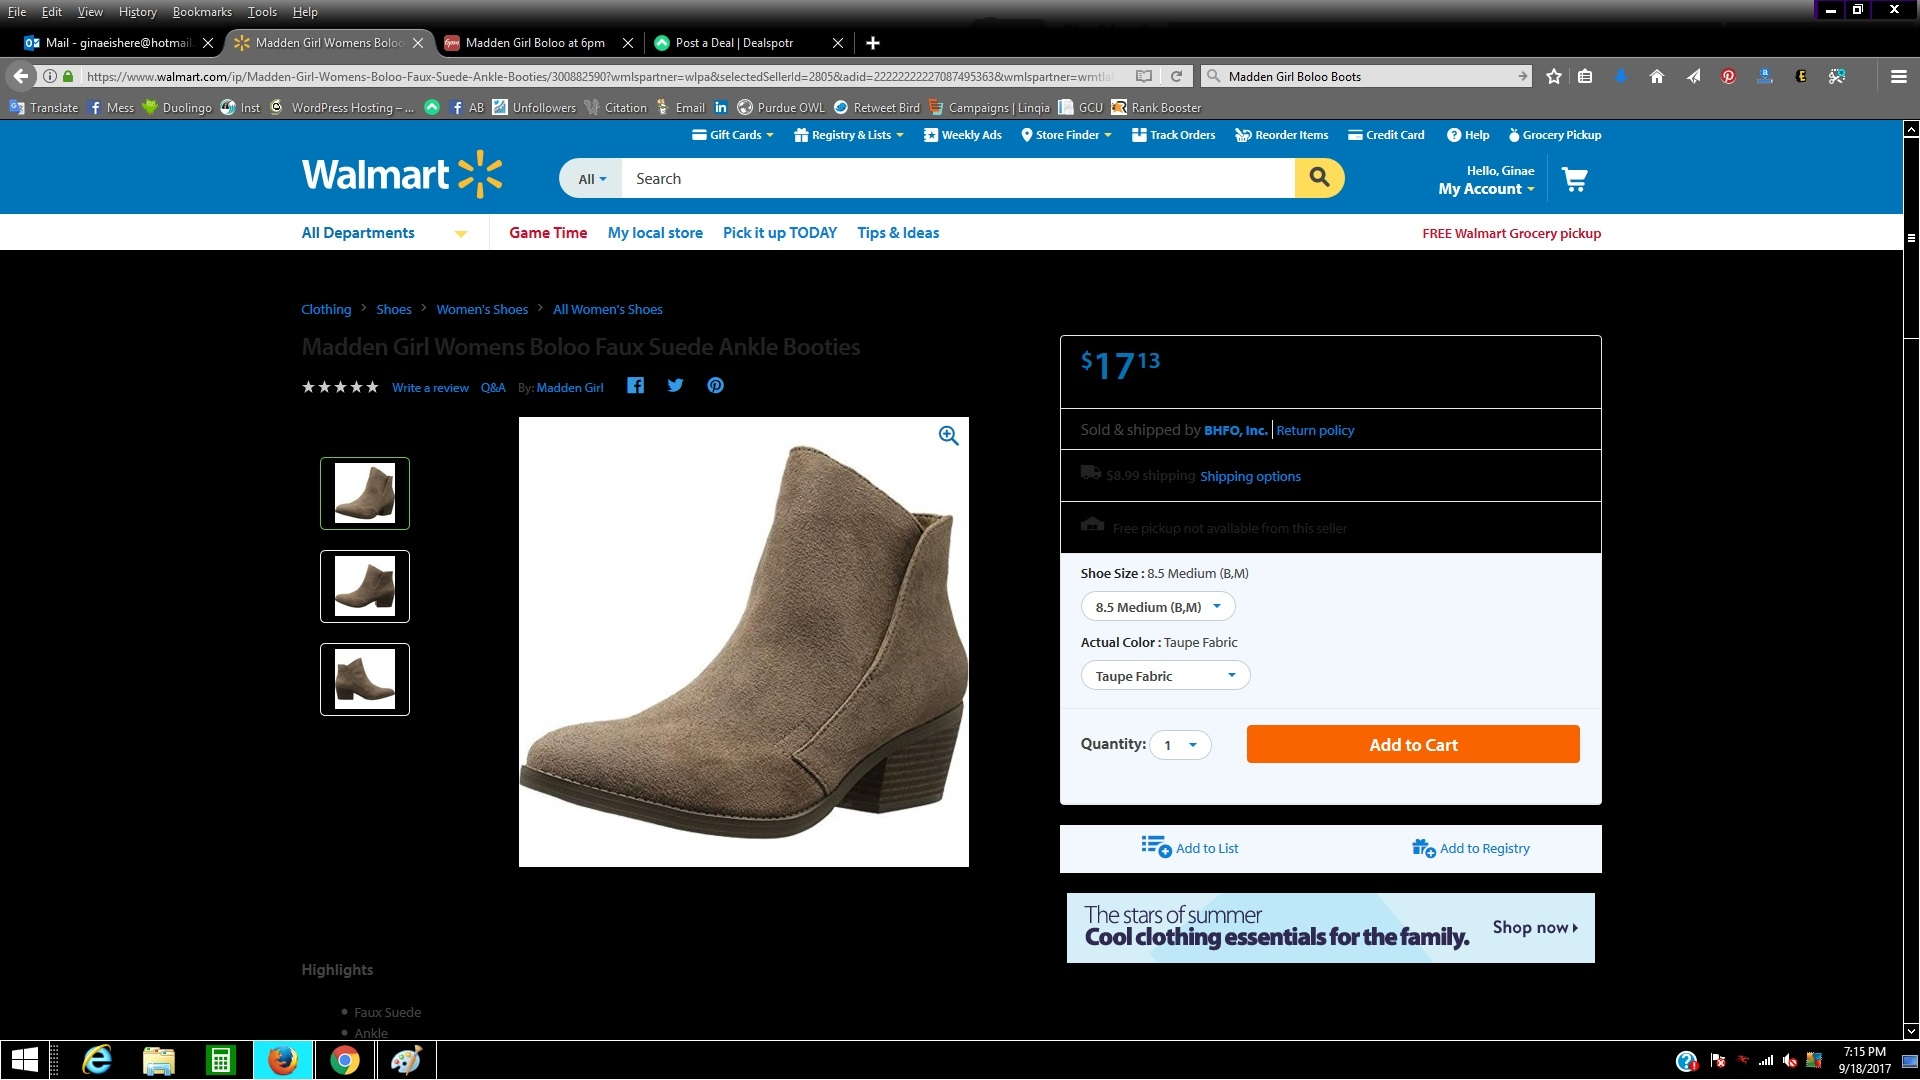 How to Use Clarks Coupons: After selecting the size and color for your selected item, you can apply discount codes and proceed to checkout through the shopping bag tab. Type in your coupon information in the box labeled